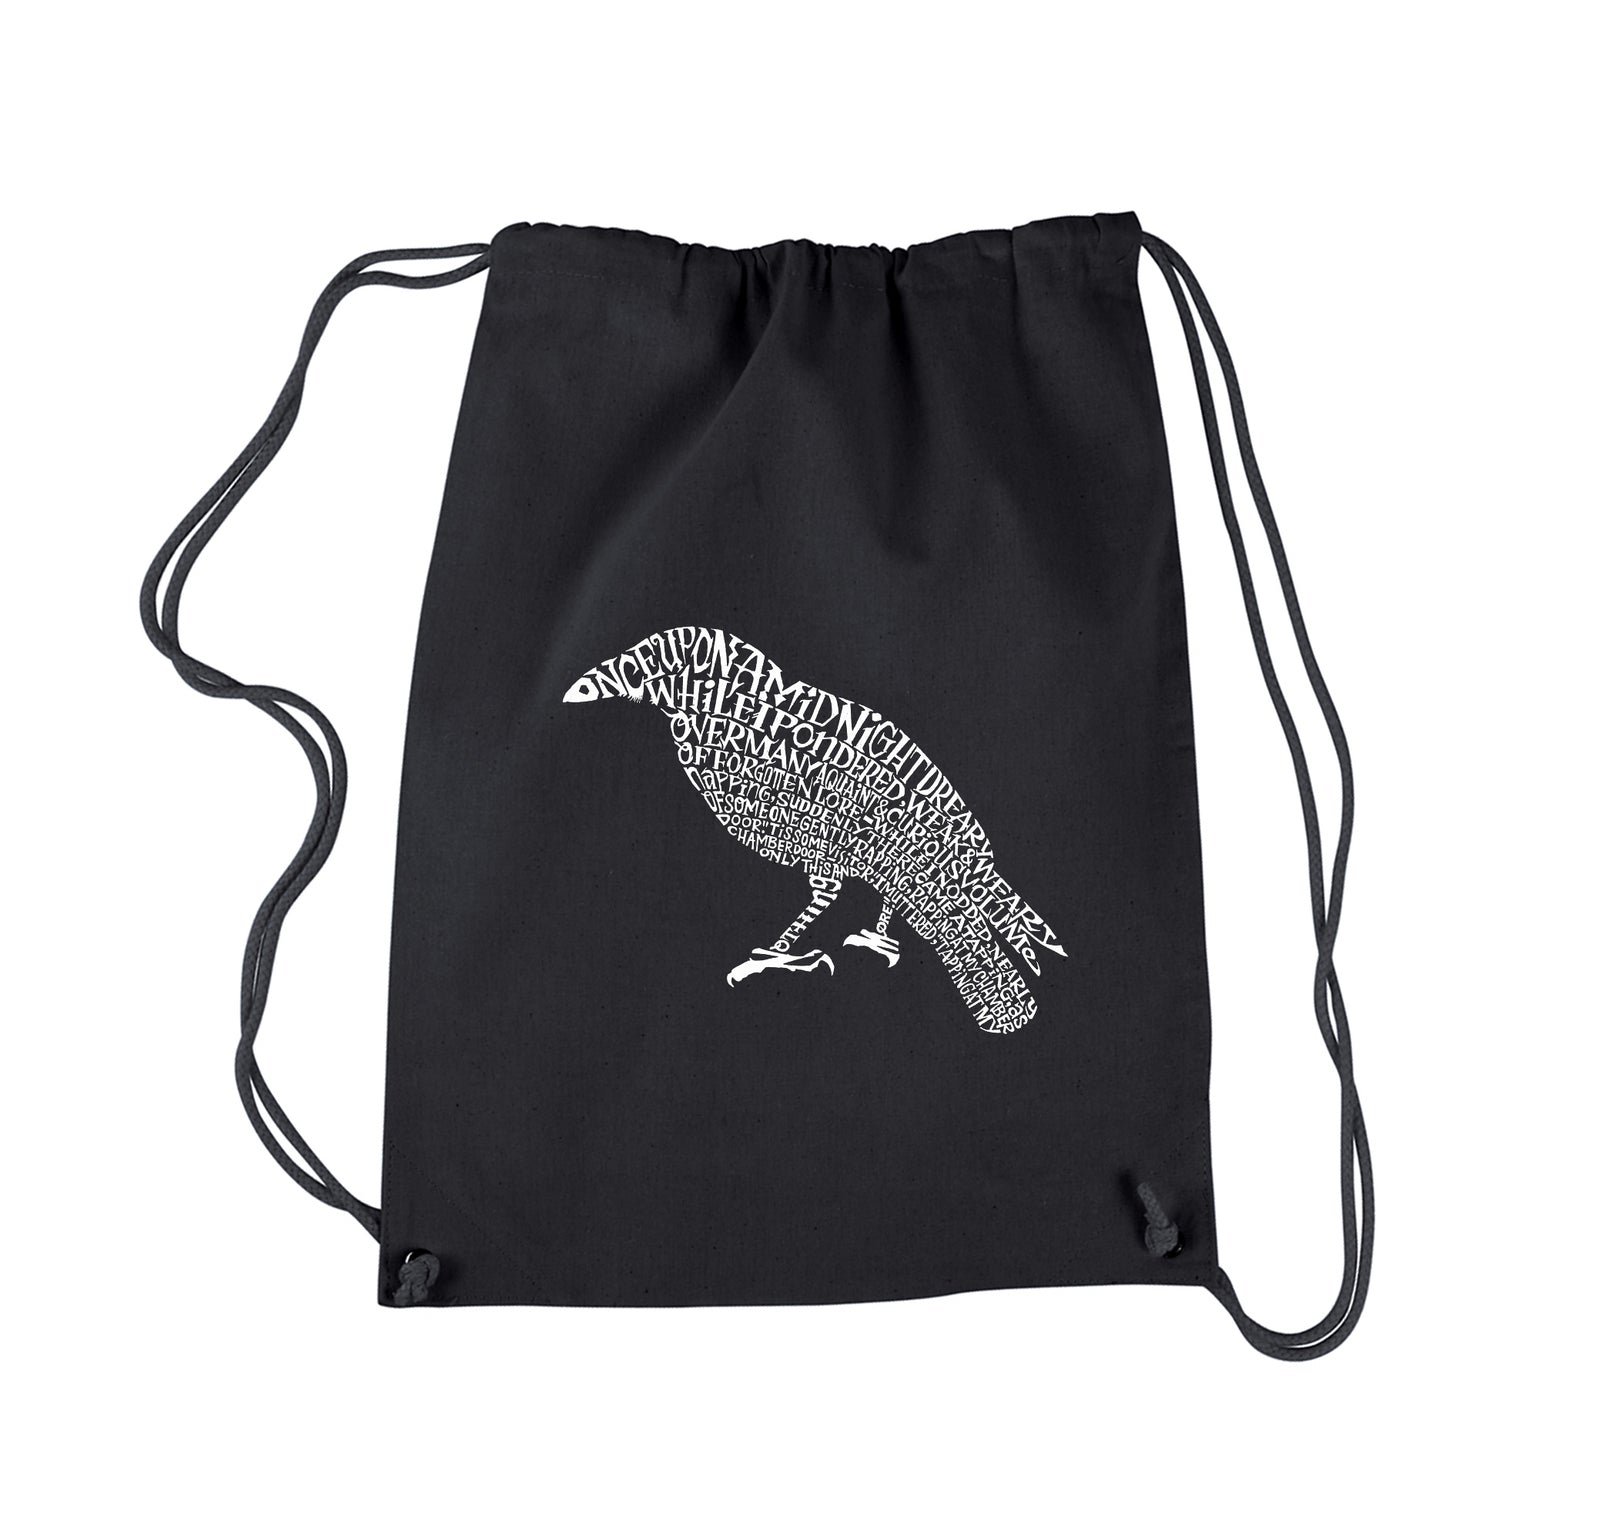 Drawstring Word Art Backpack - Edgar Allen Poe's The Raven